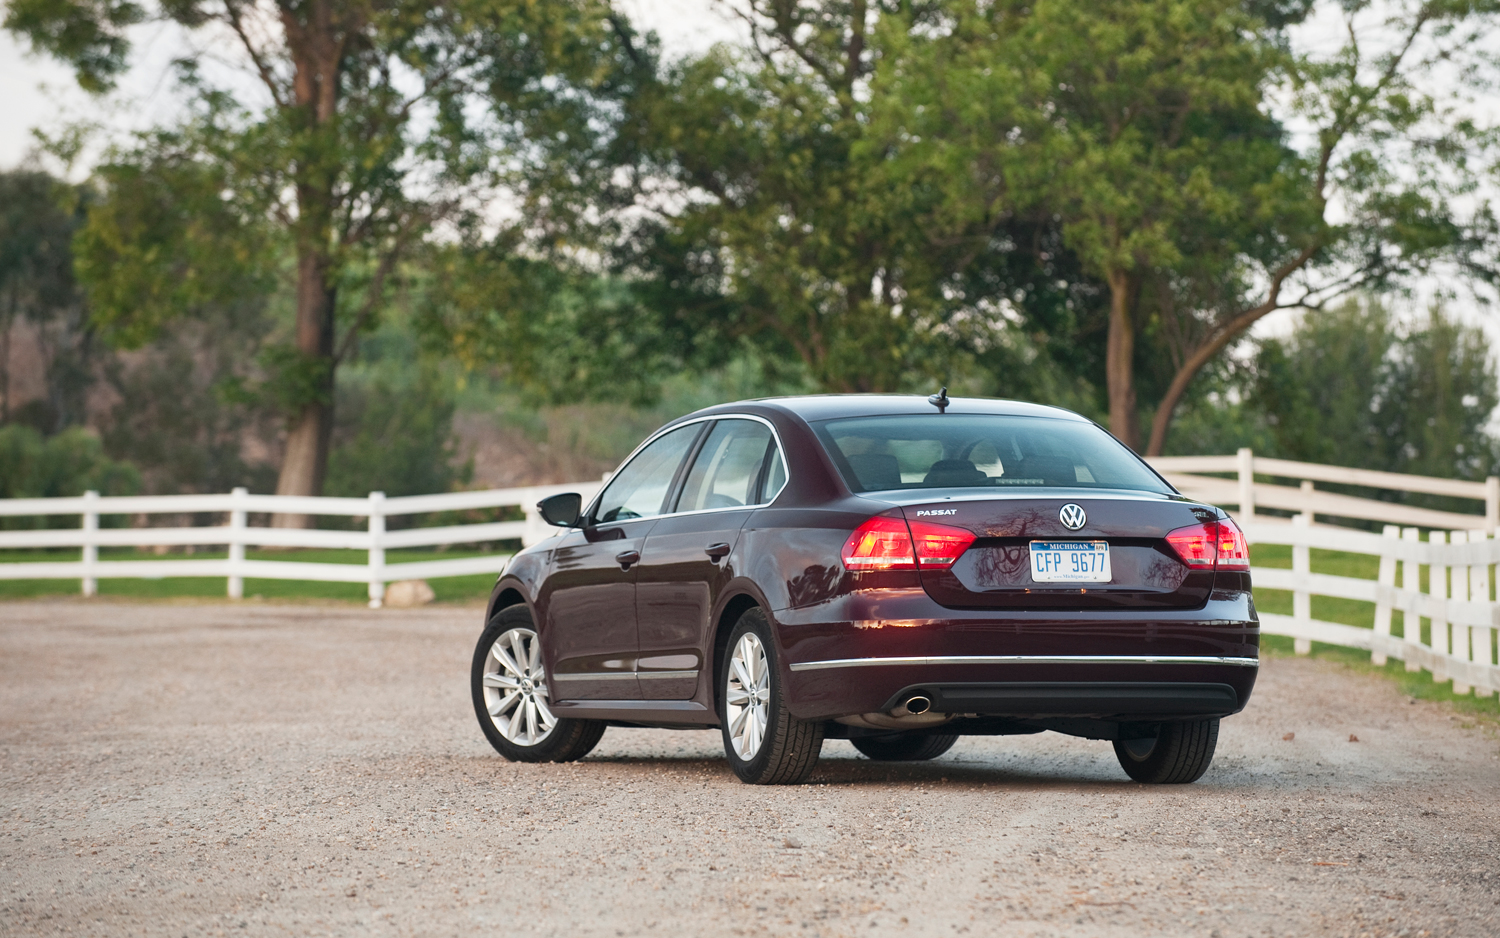 2012 Volkswagen Passat SEL Long-Term Update 2